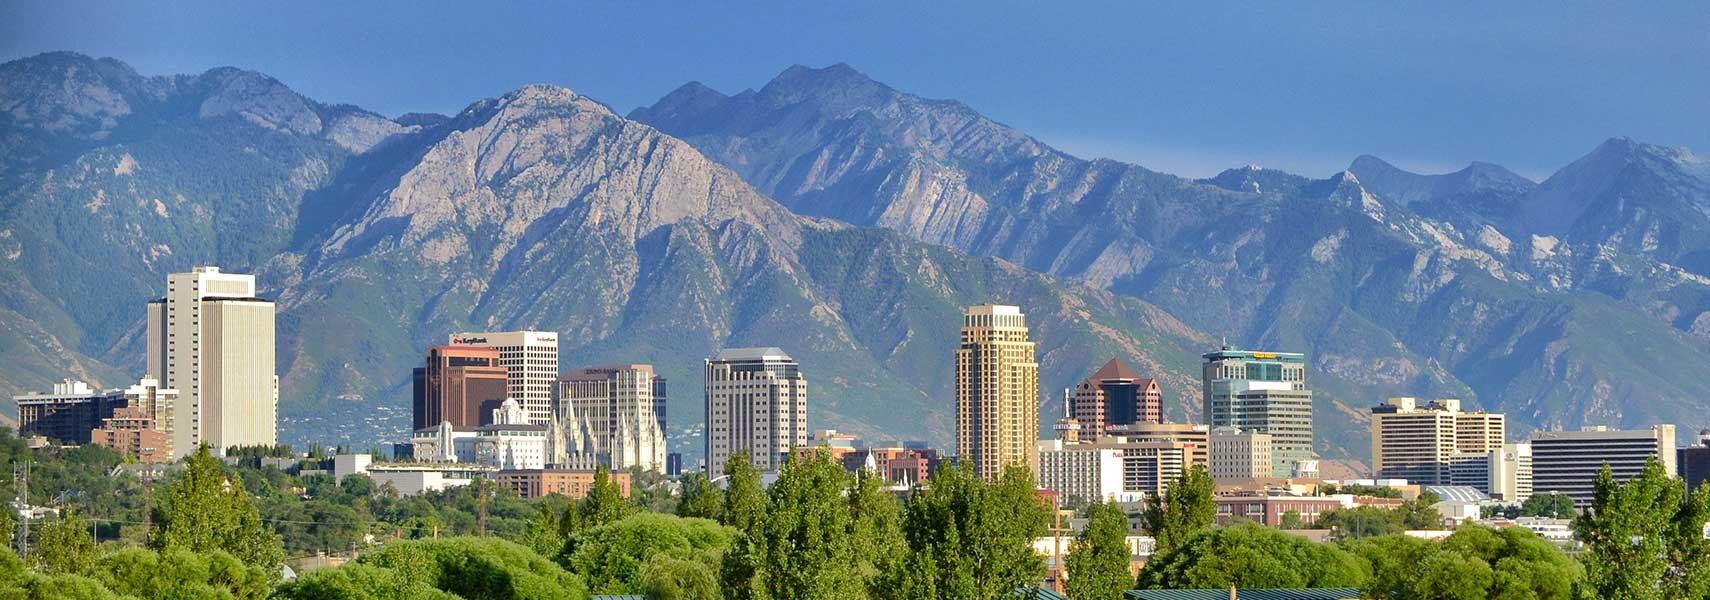 Salt Lake City, capital of Utah, USA - Nations Online Project